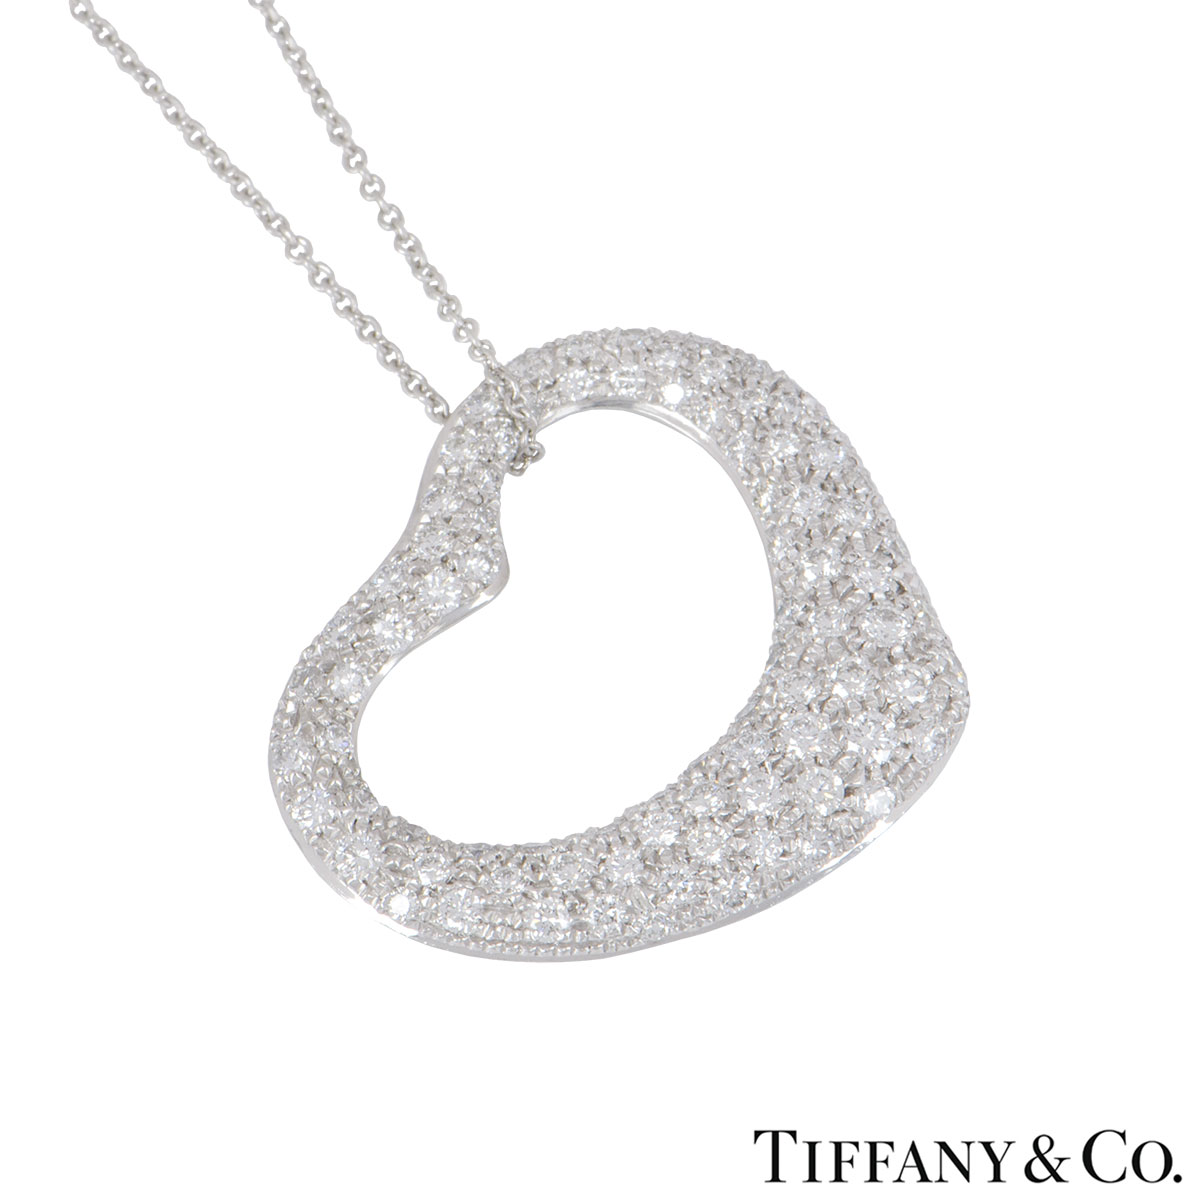 Tiffany & Co. Platinum Diamond Elsa Peretti Pendant